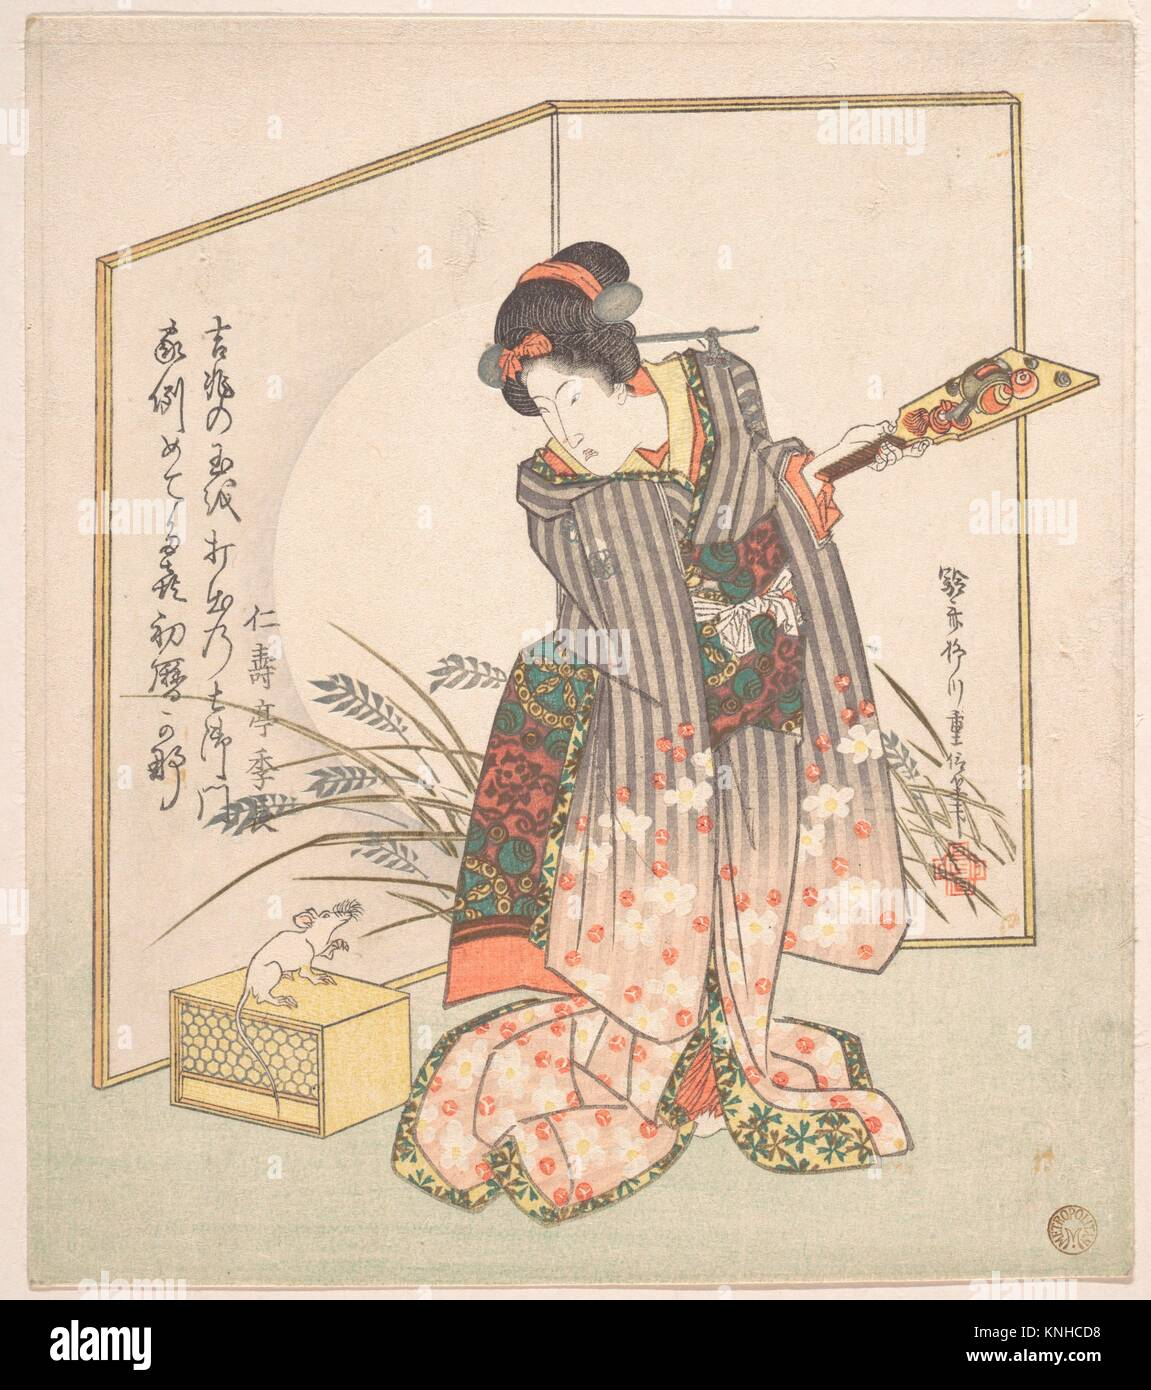 New year greeting card for rat year artist yanagawa shigenobu new year greeting card for rat year artist yanagawa shigenobu japanese 1787 1832 period edo period 1615 1868 date 1828 culture japan m4hsunfo